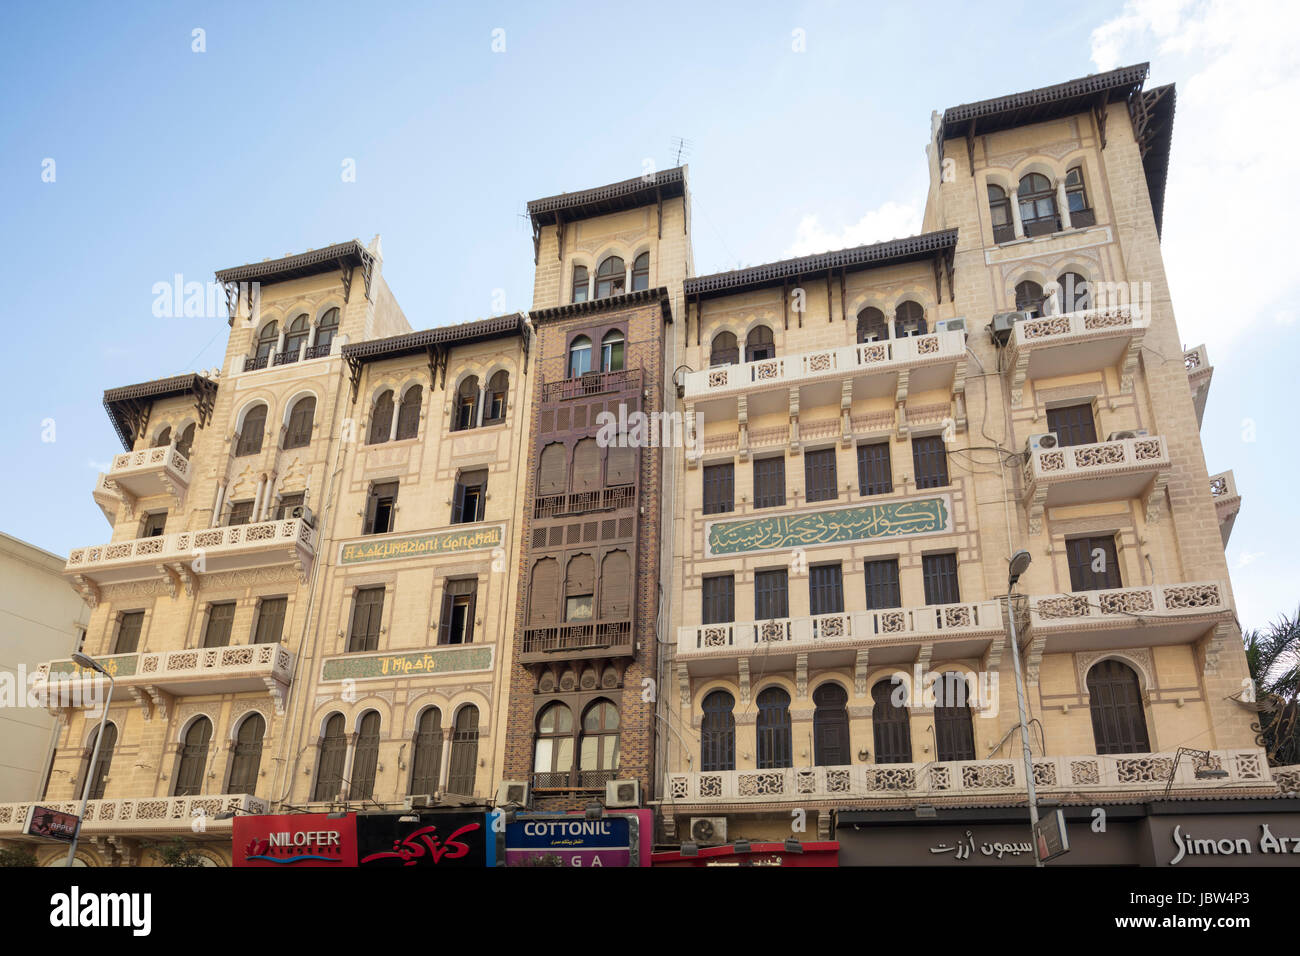 Egyptian mosaic photos egyptian mosaic images alamy for Assicurazione casa generali